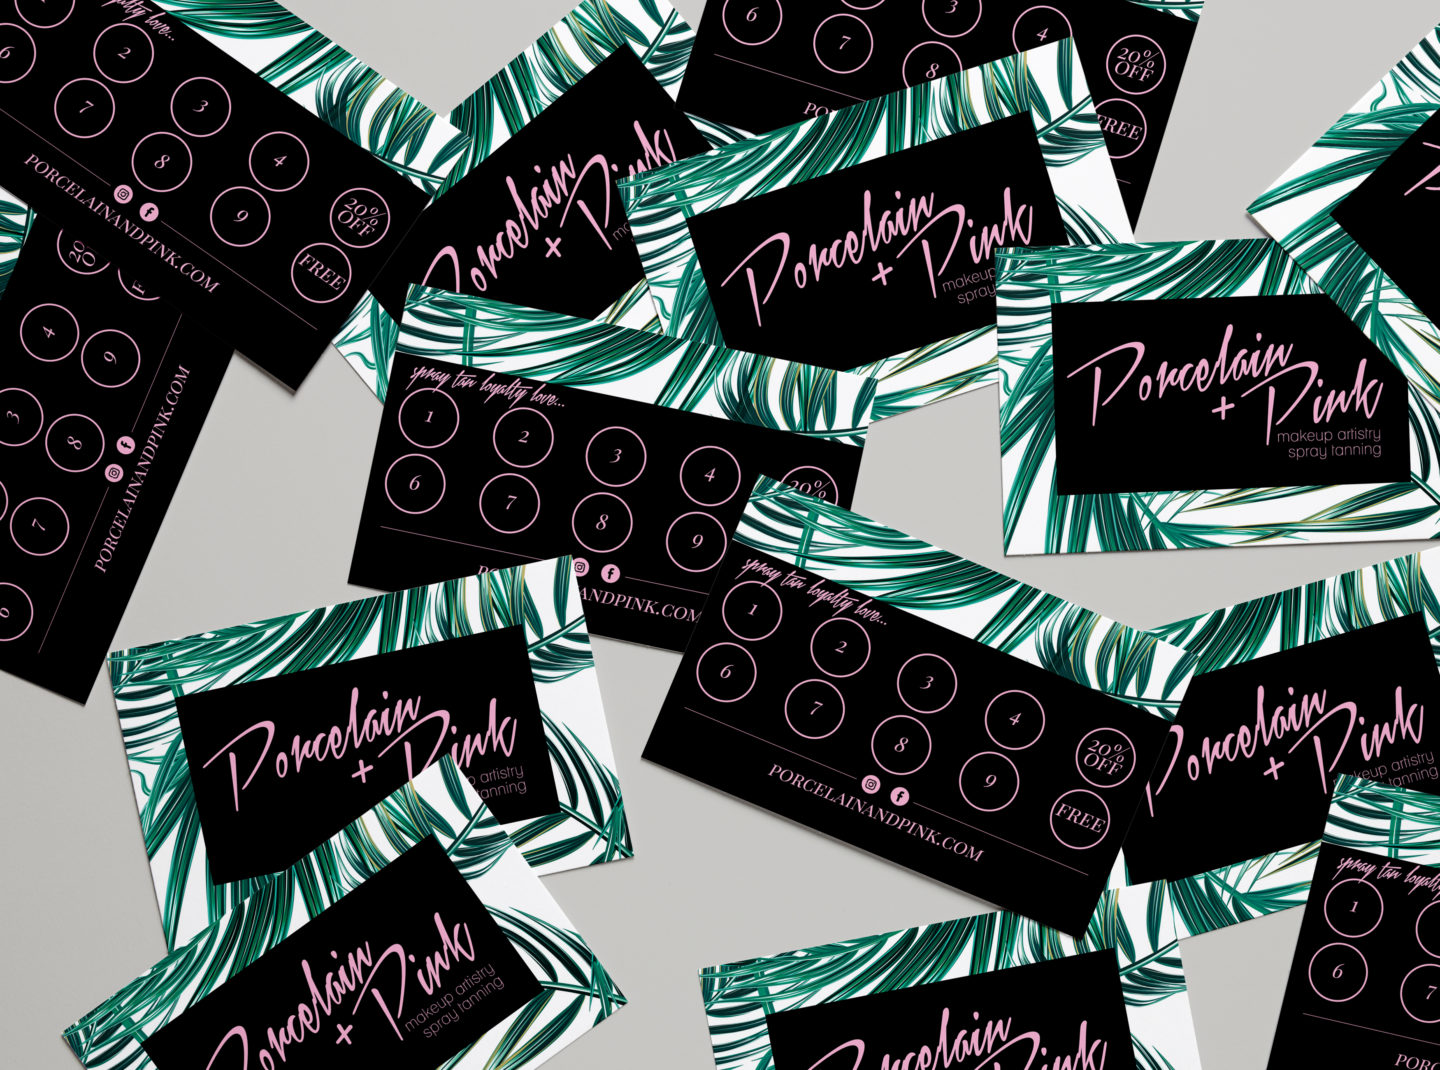 NEW Spray Tan Loyalty Cards!